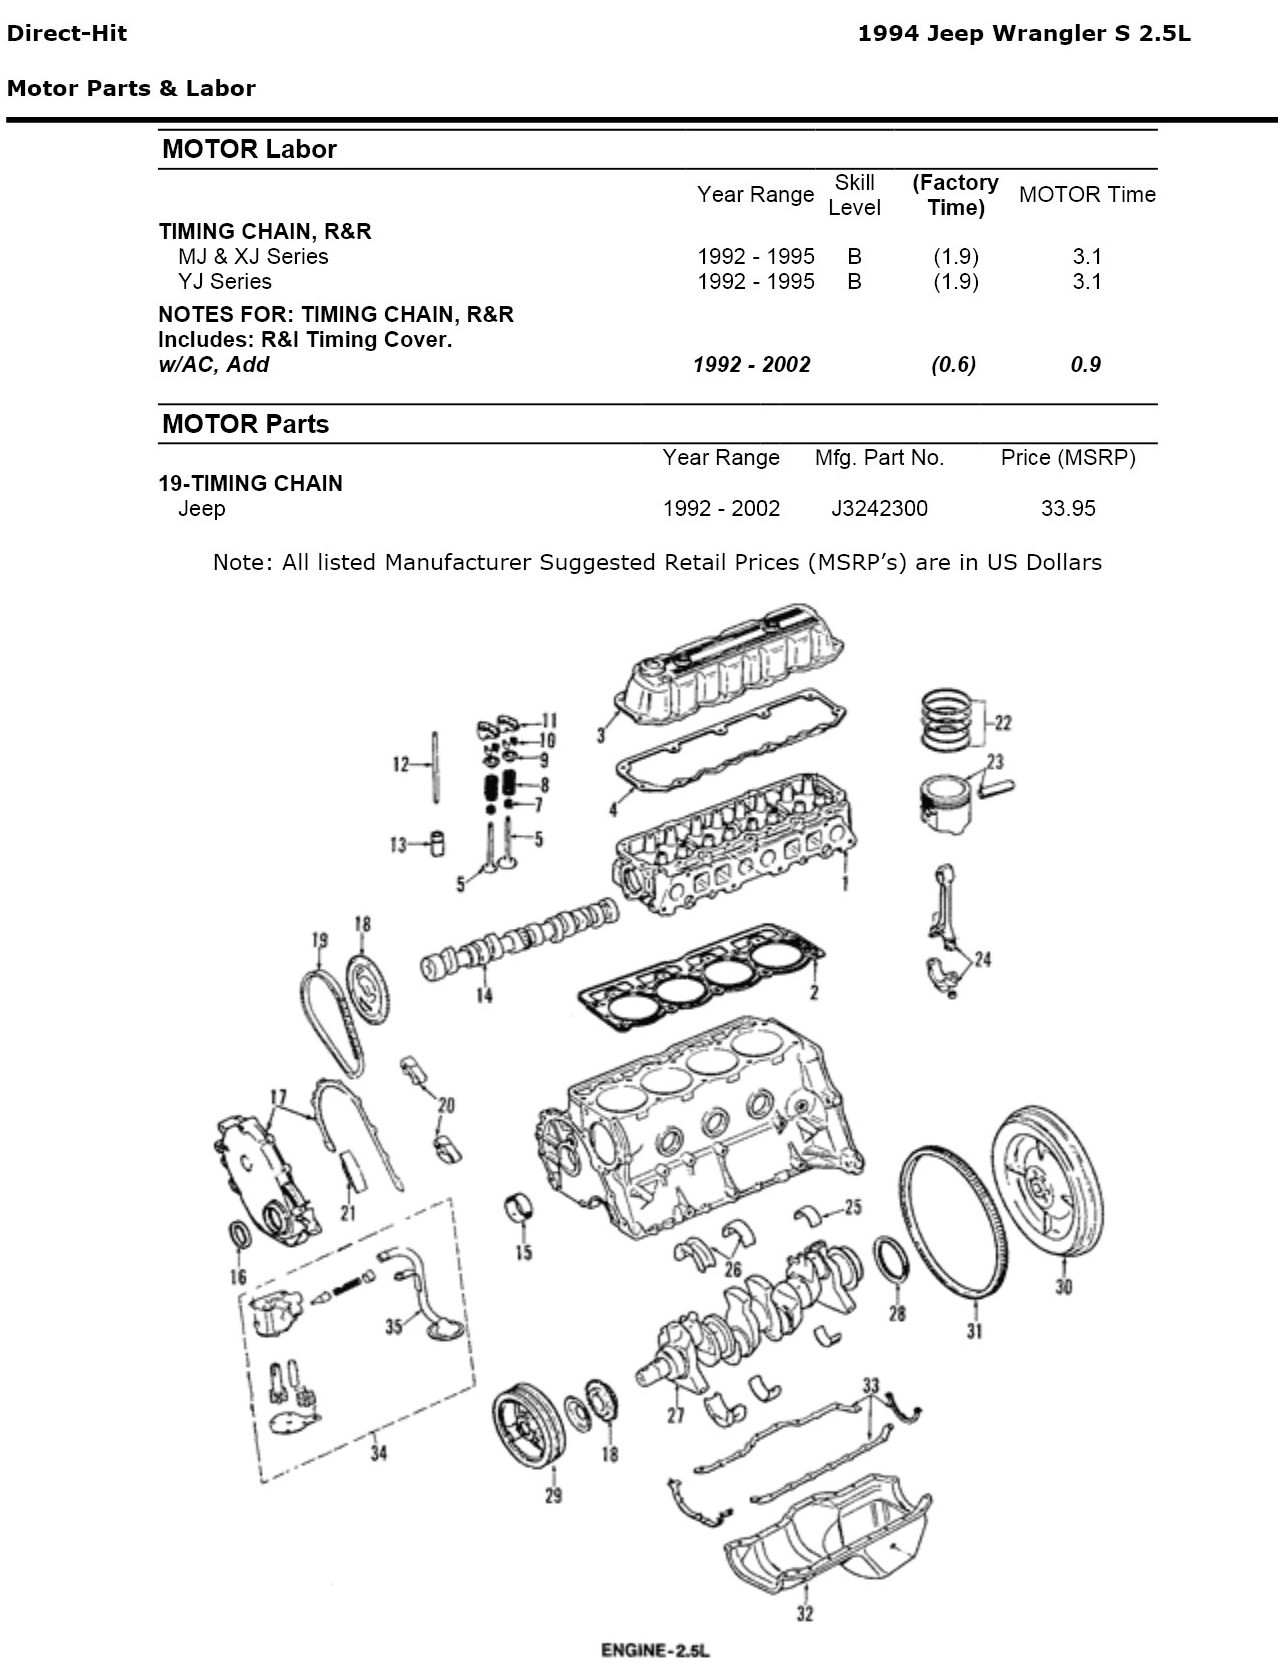 how hard is it to replace a timing chain on a 1994 jeep